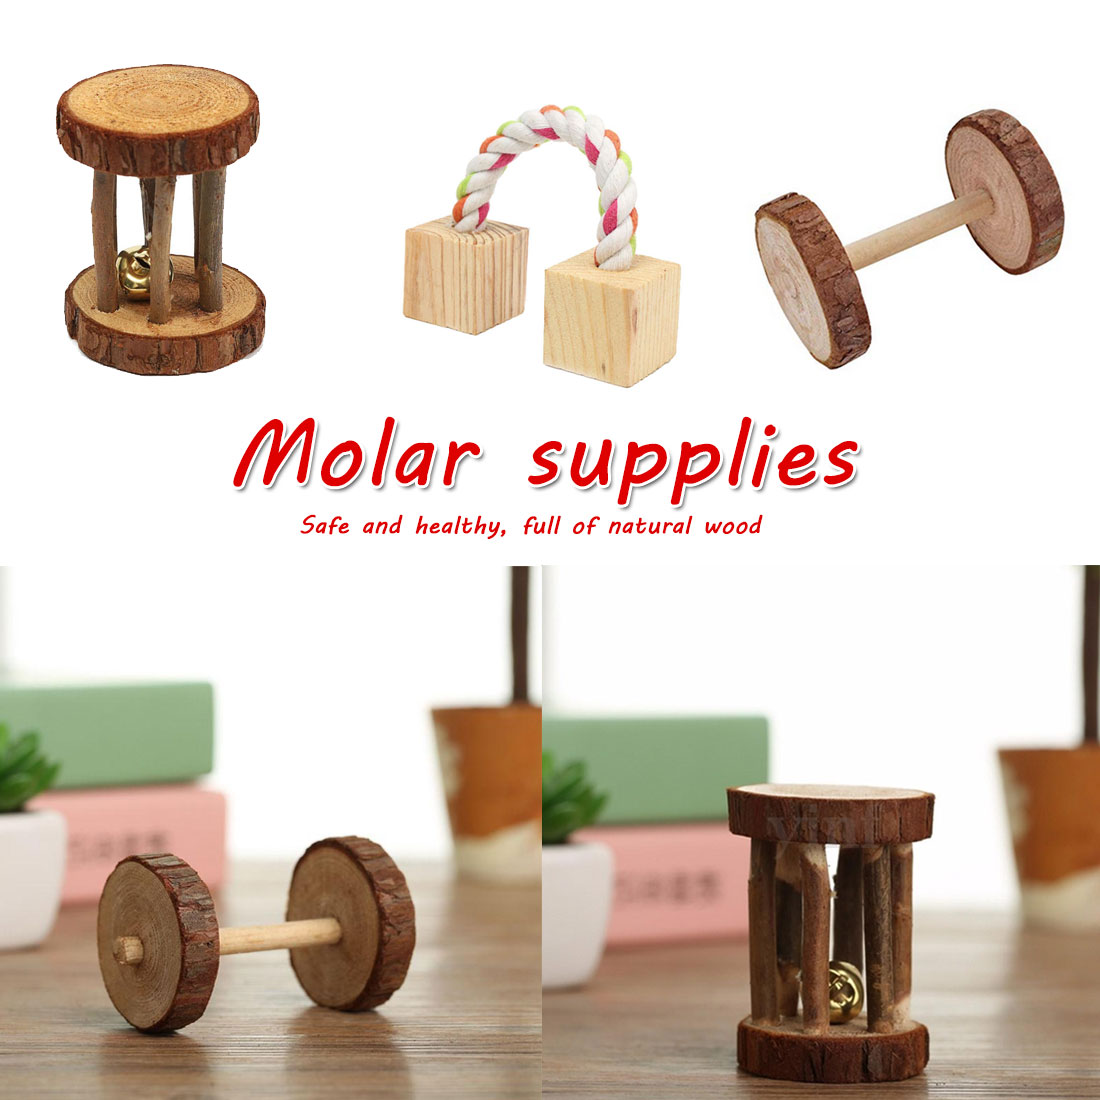 Cute Natural Wooden Rabbits Small font b Pet b font Molars Supplies Toys Pine Dumbells Unicycle